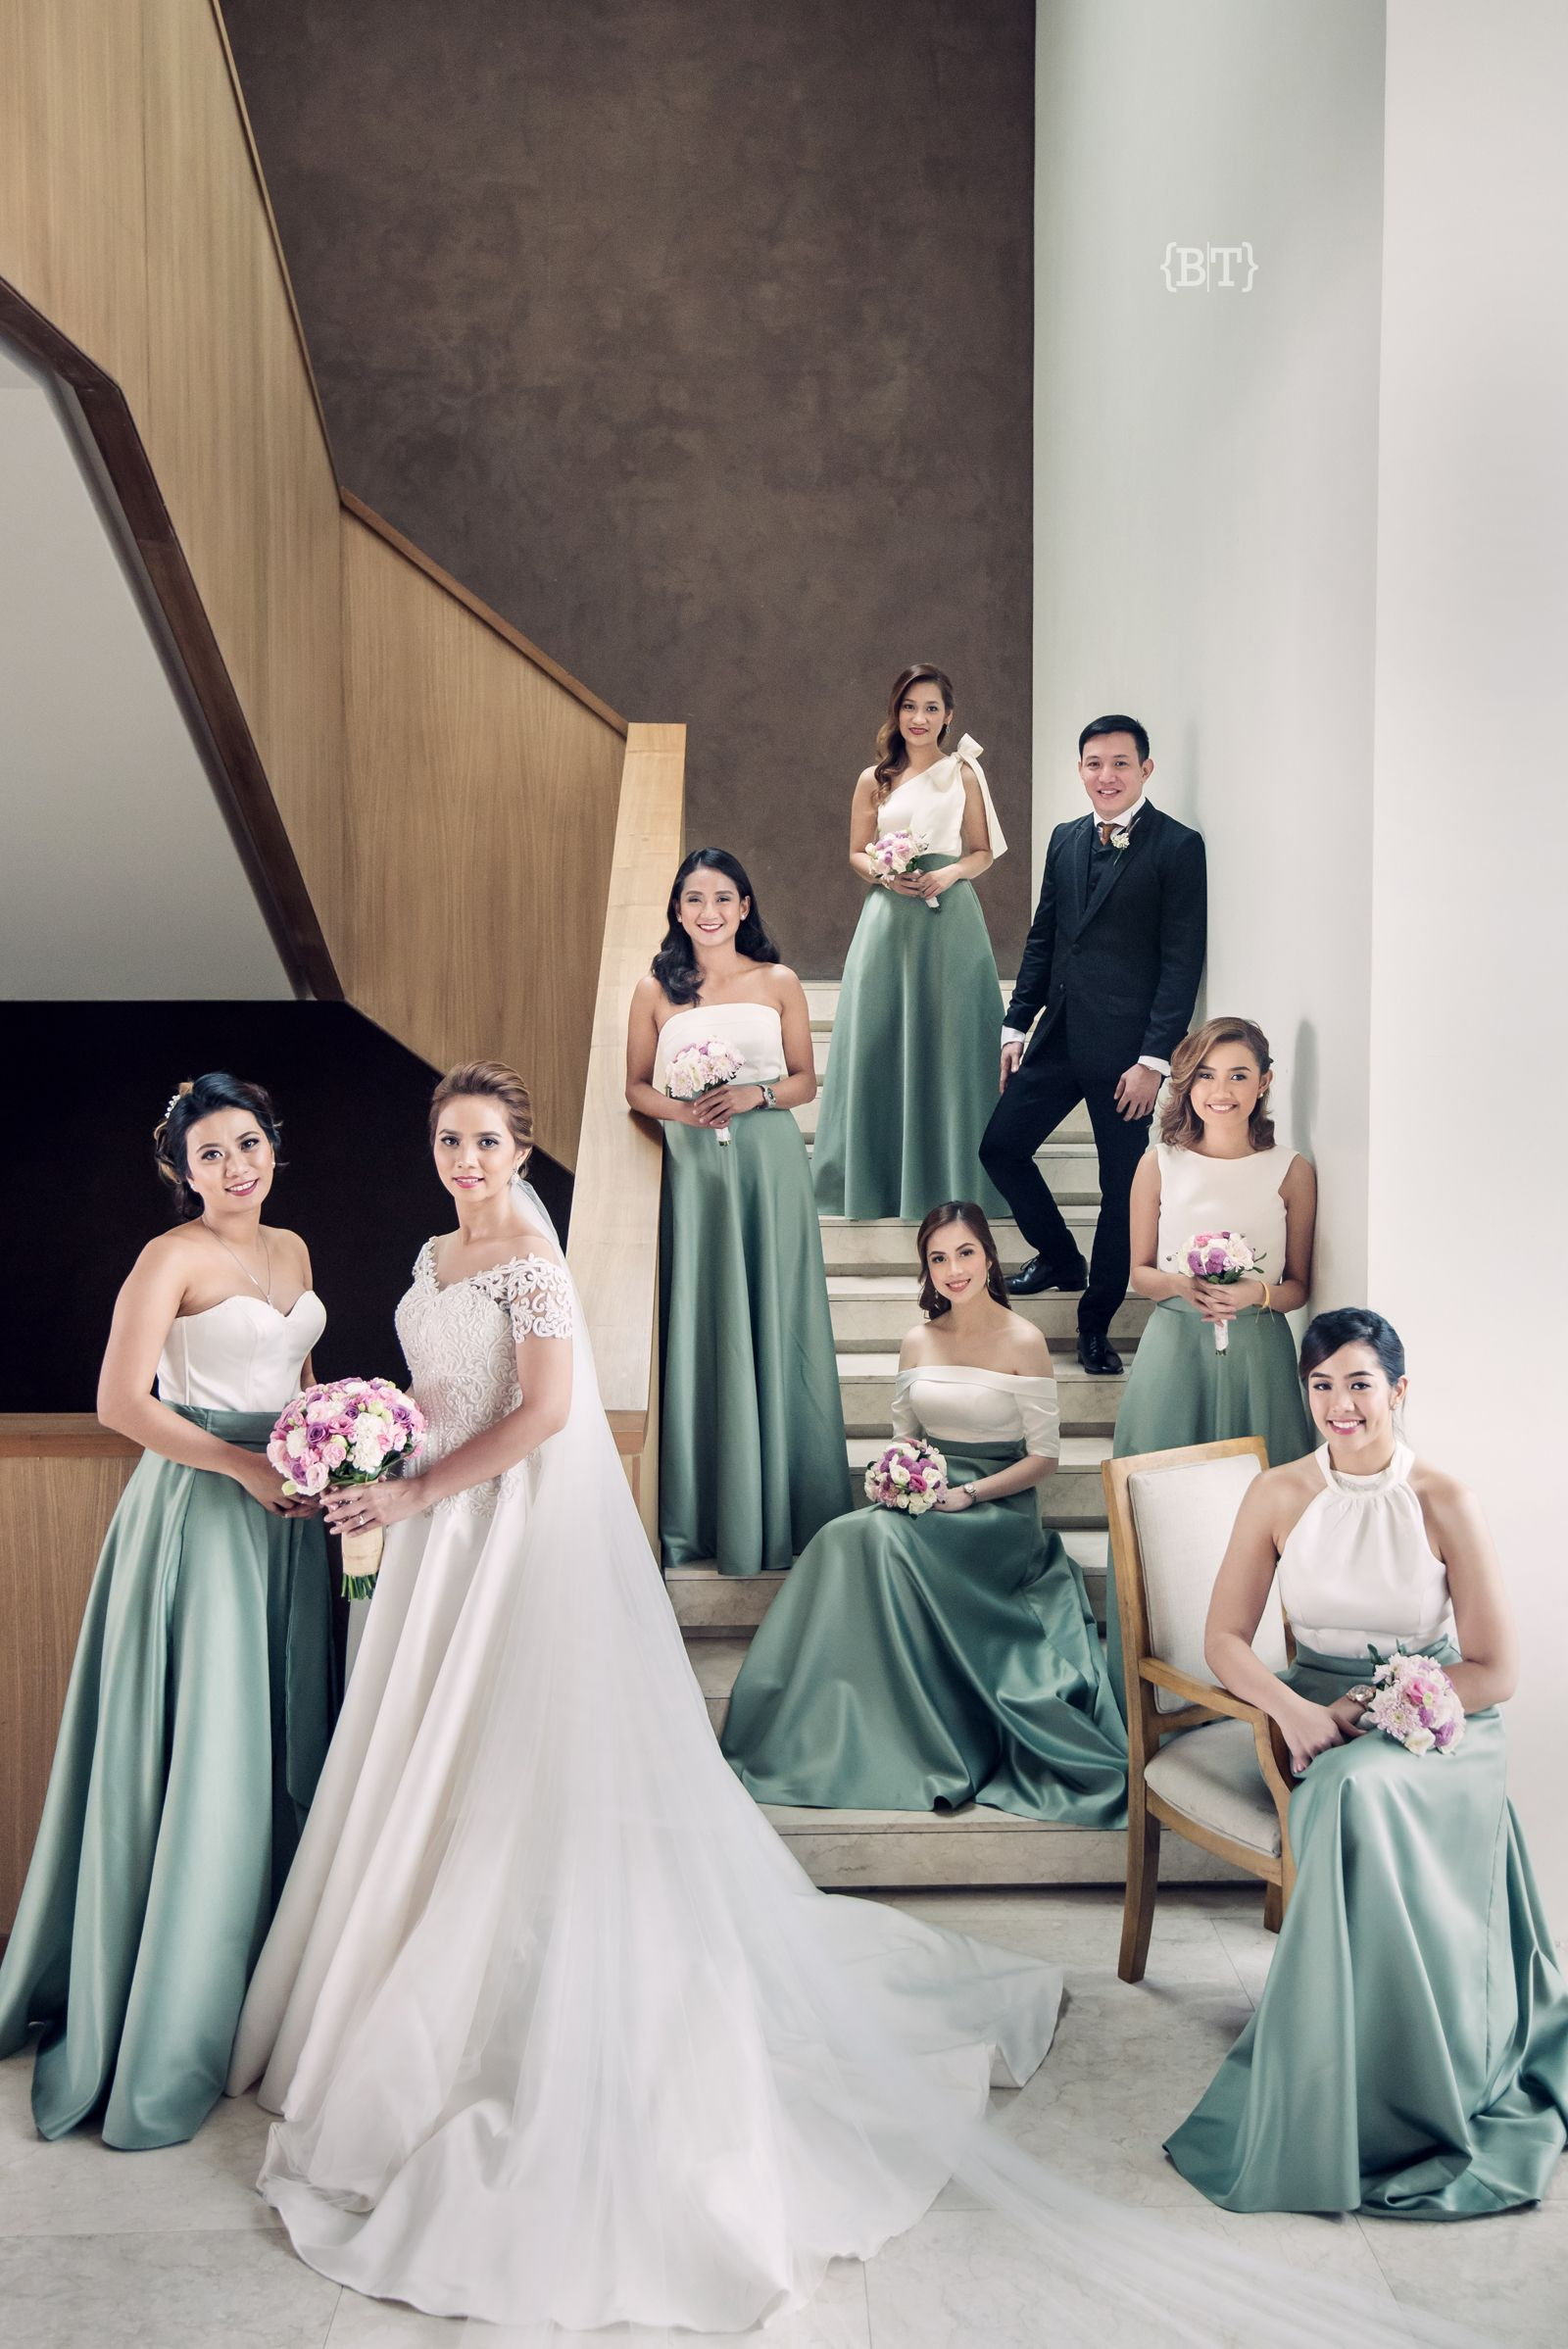 Benjie Tiongco Photography Vintage Off Shoulder Short Sleeve A Line Wedding Gown Dress Filipiniana Wedding Dress Wedding Entourage Gowns Rustic Wedding Gowns [ 2397 x 1600 Pixel ]